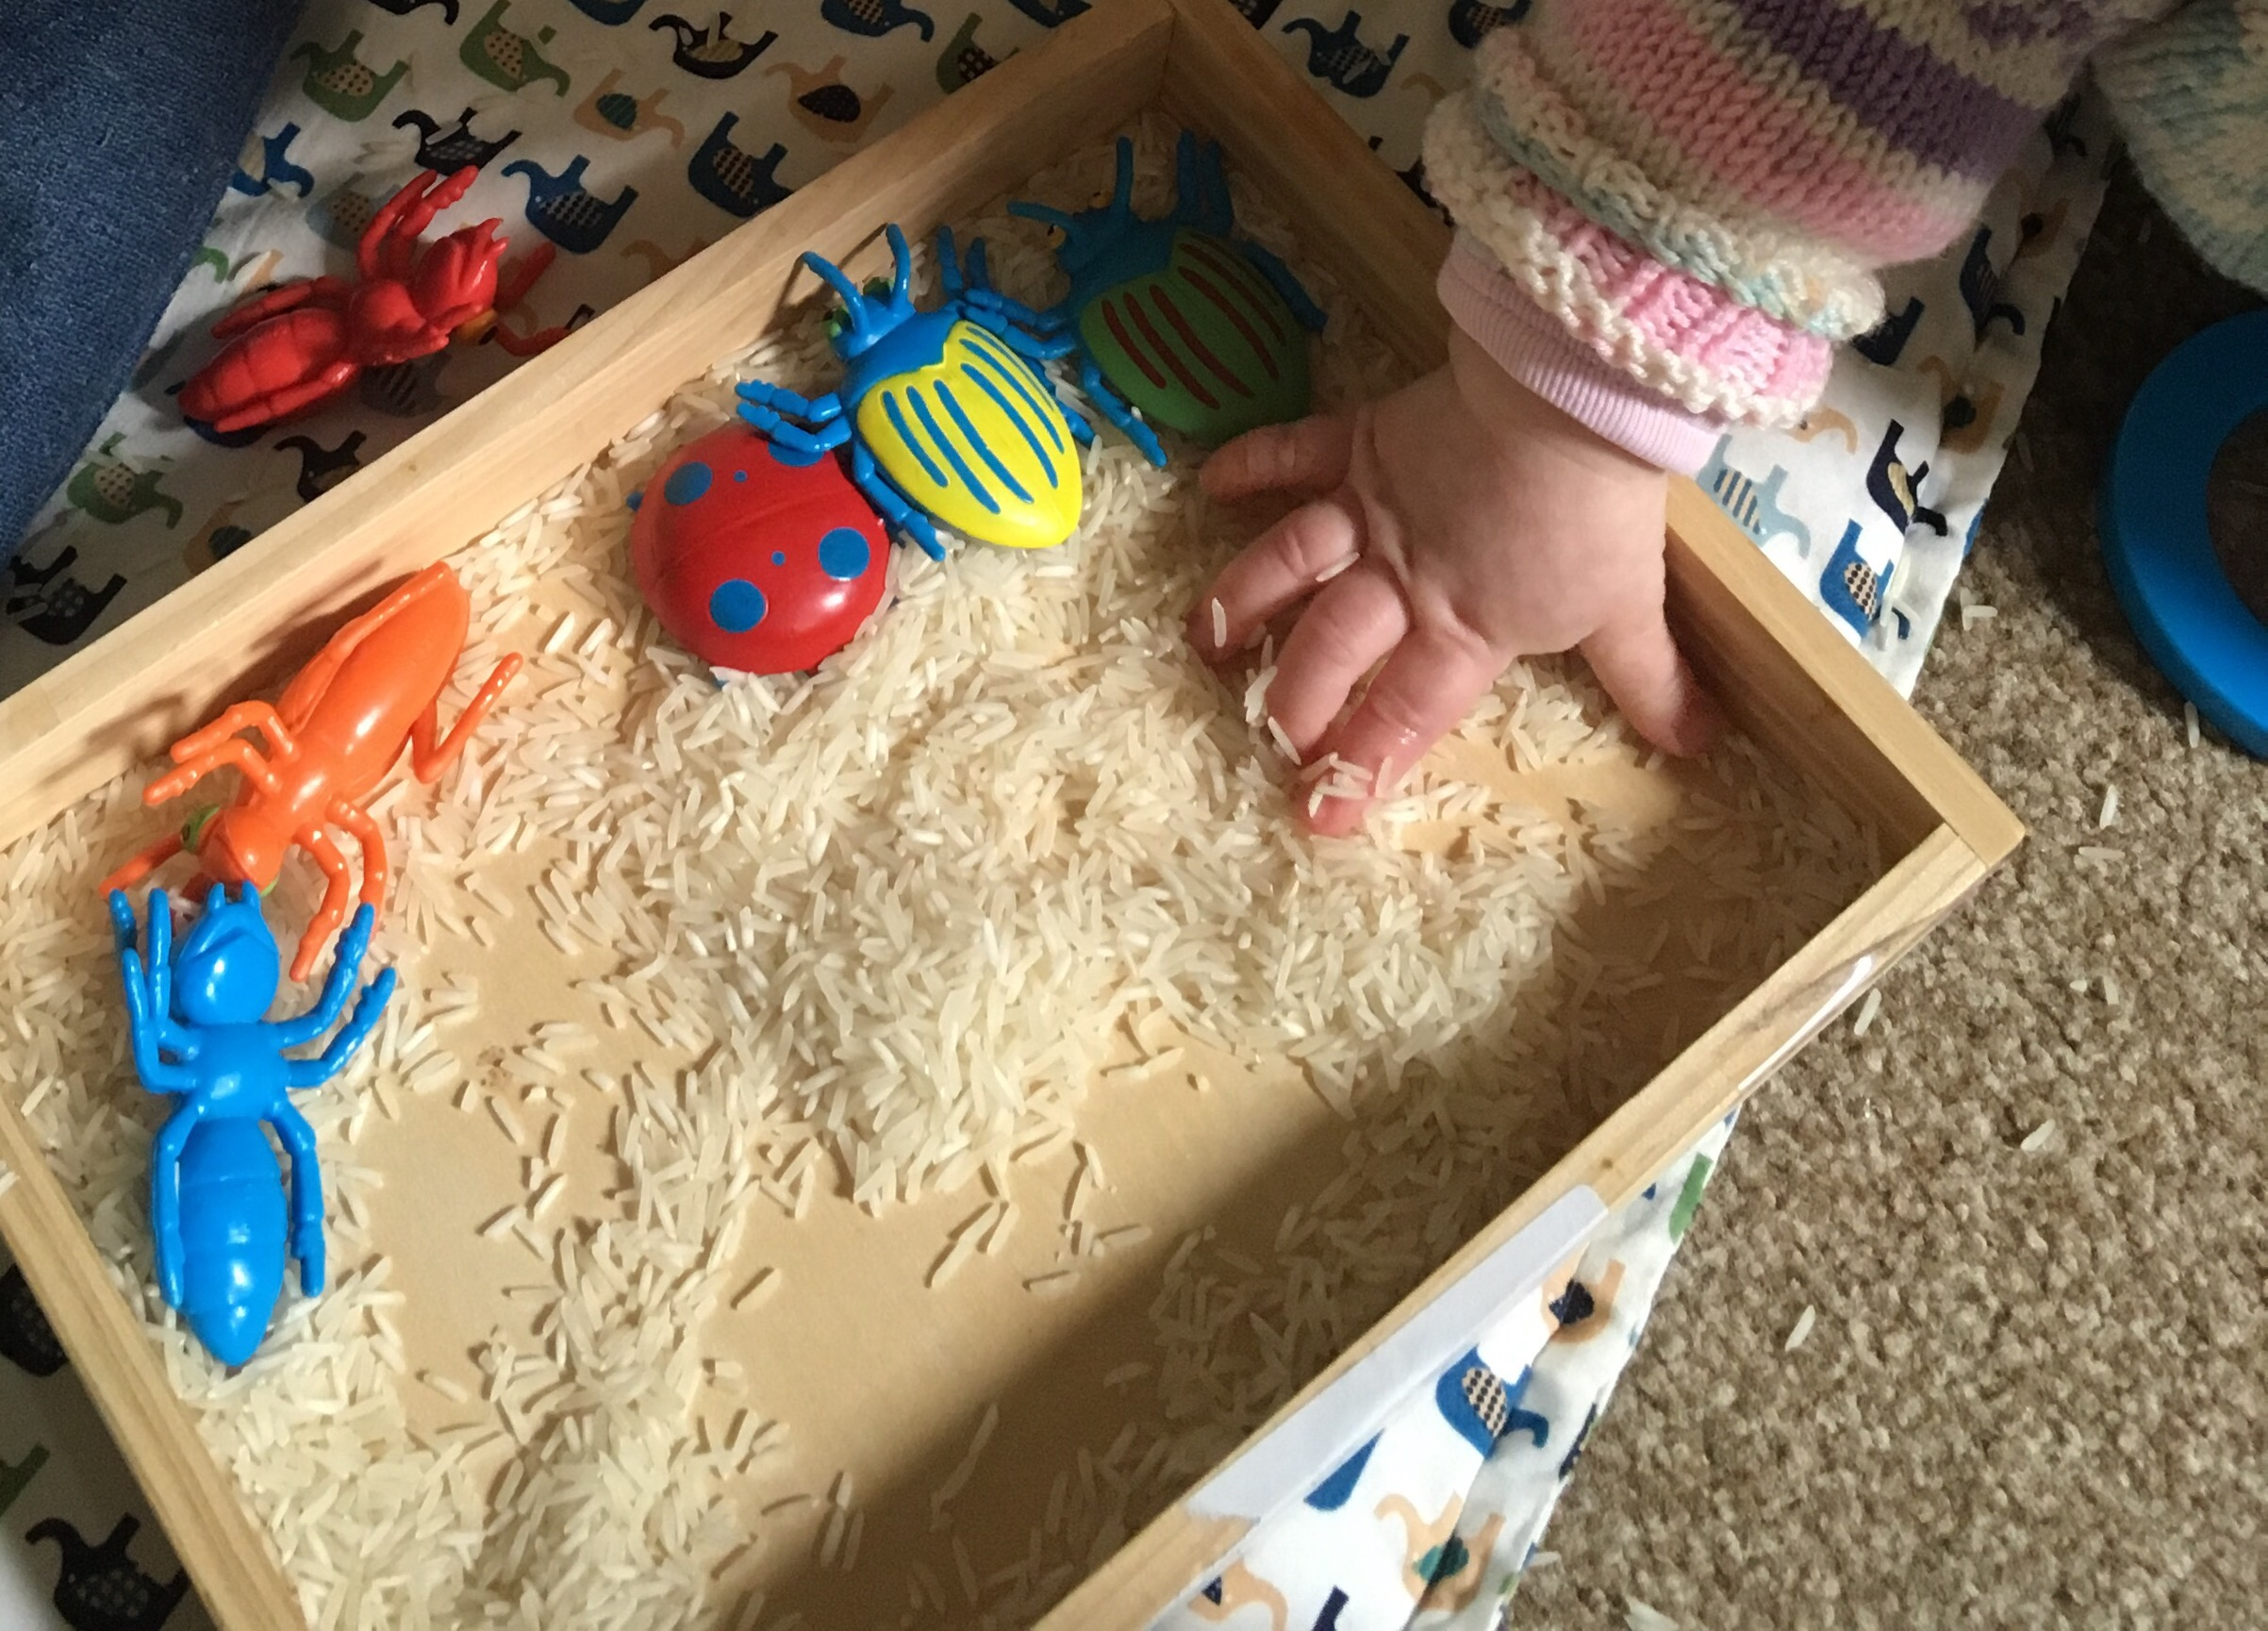 Sensory play with rice and bugs a tray